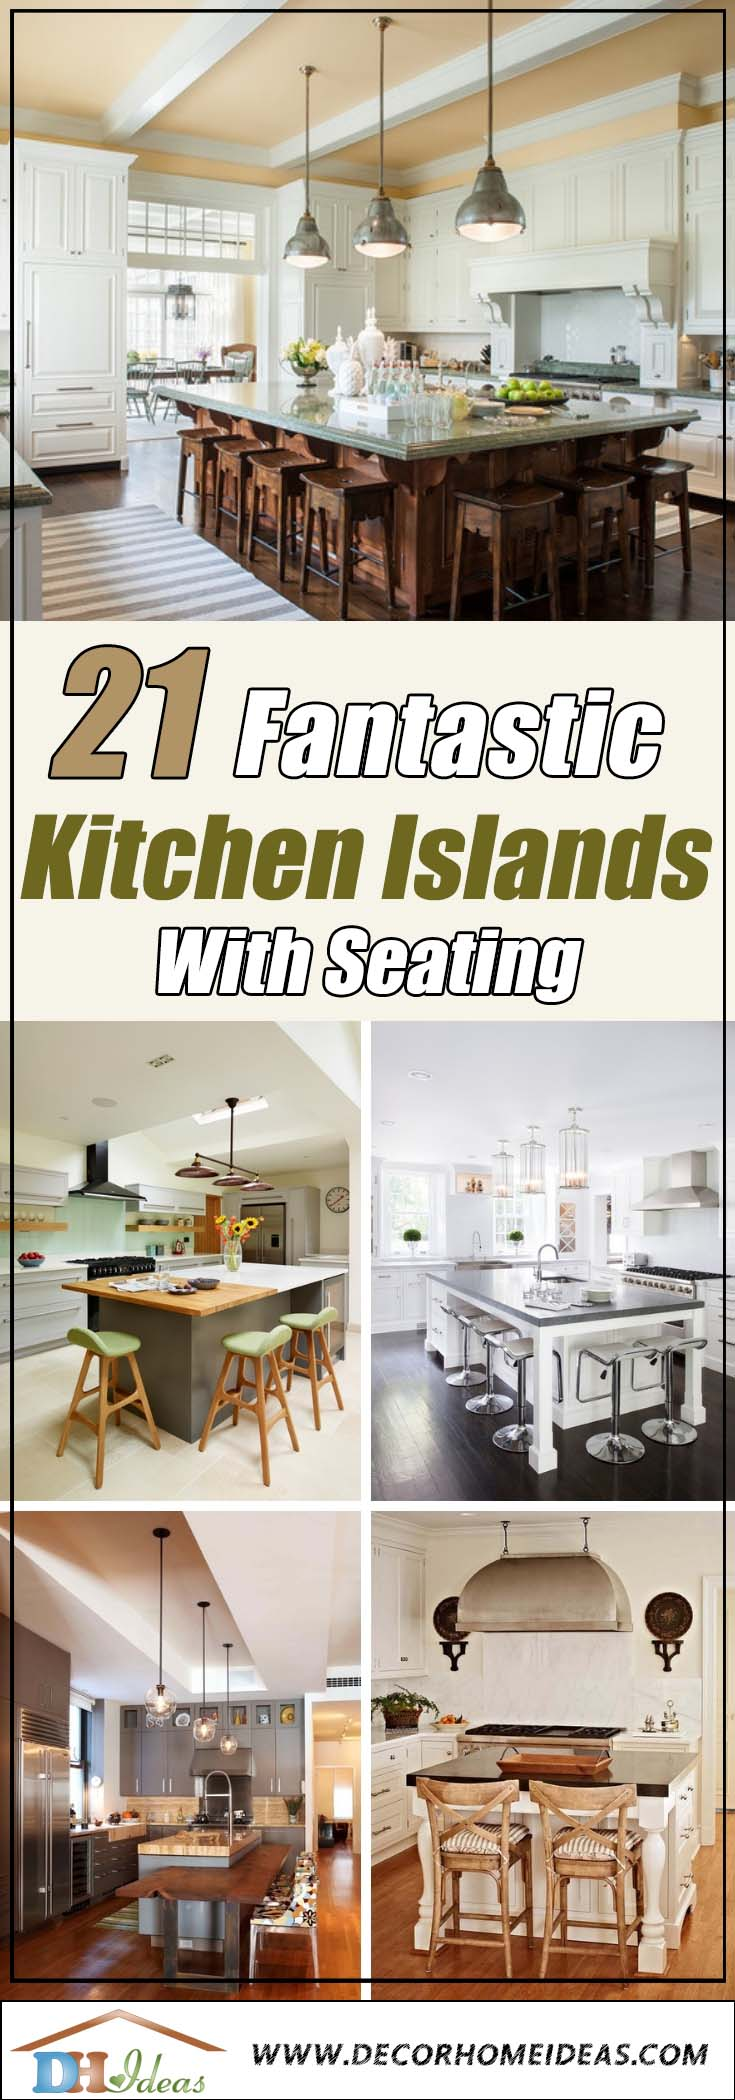 21 Fantastic Kitchen Islands With Seating